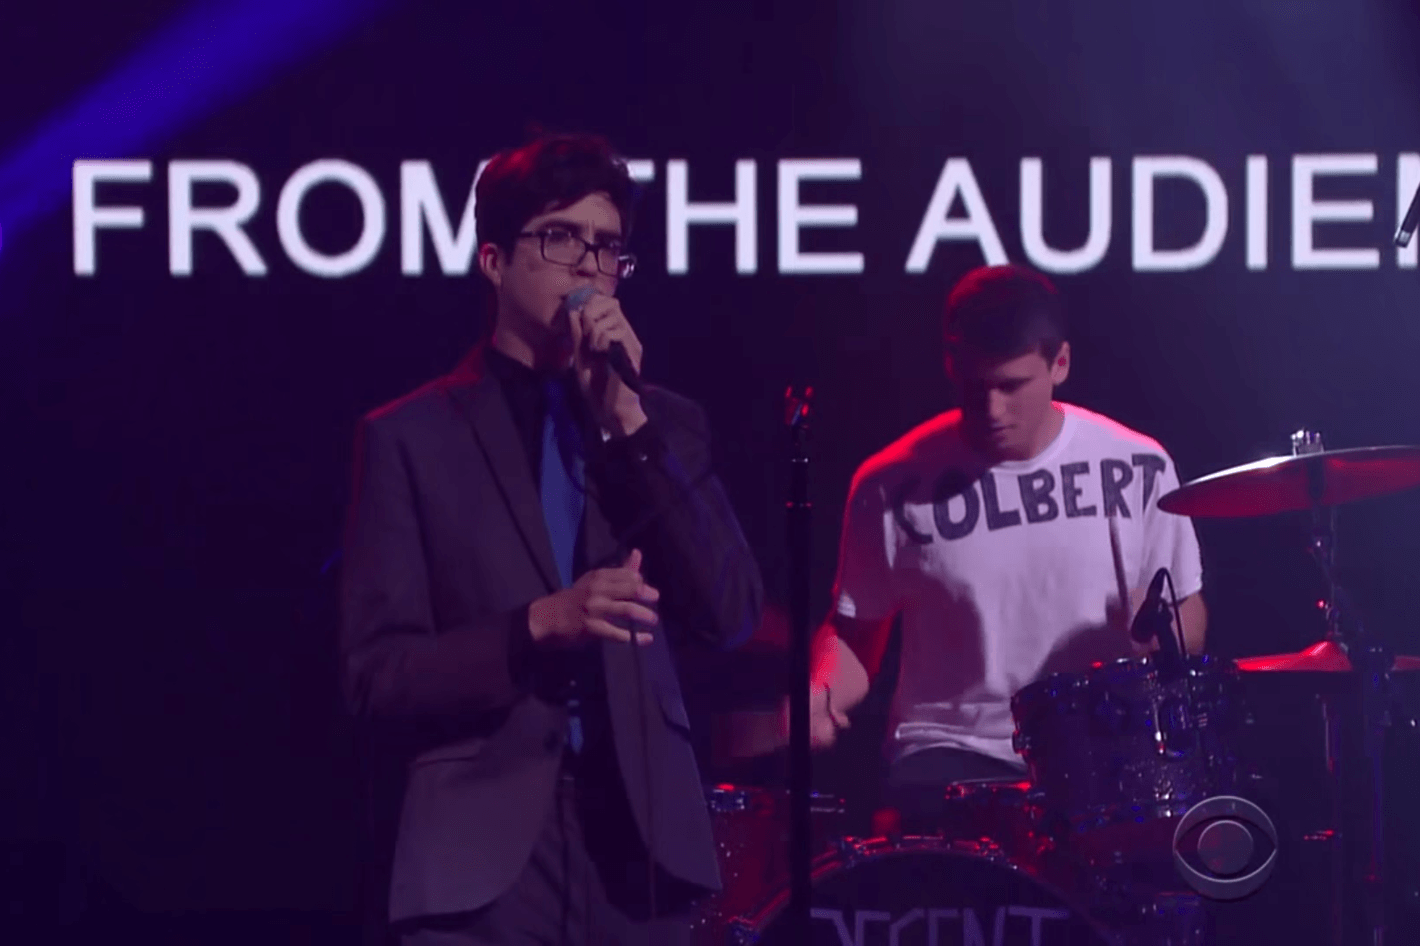 Car Seat Headrest Makes TV Debut Drummer Wears Colbert Shirt To Remember Where He Is